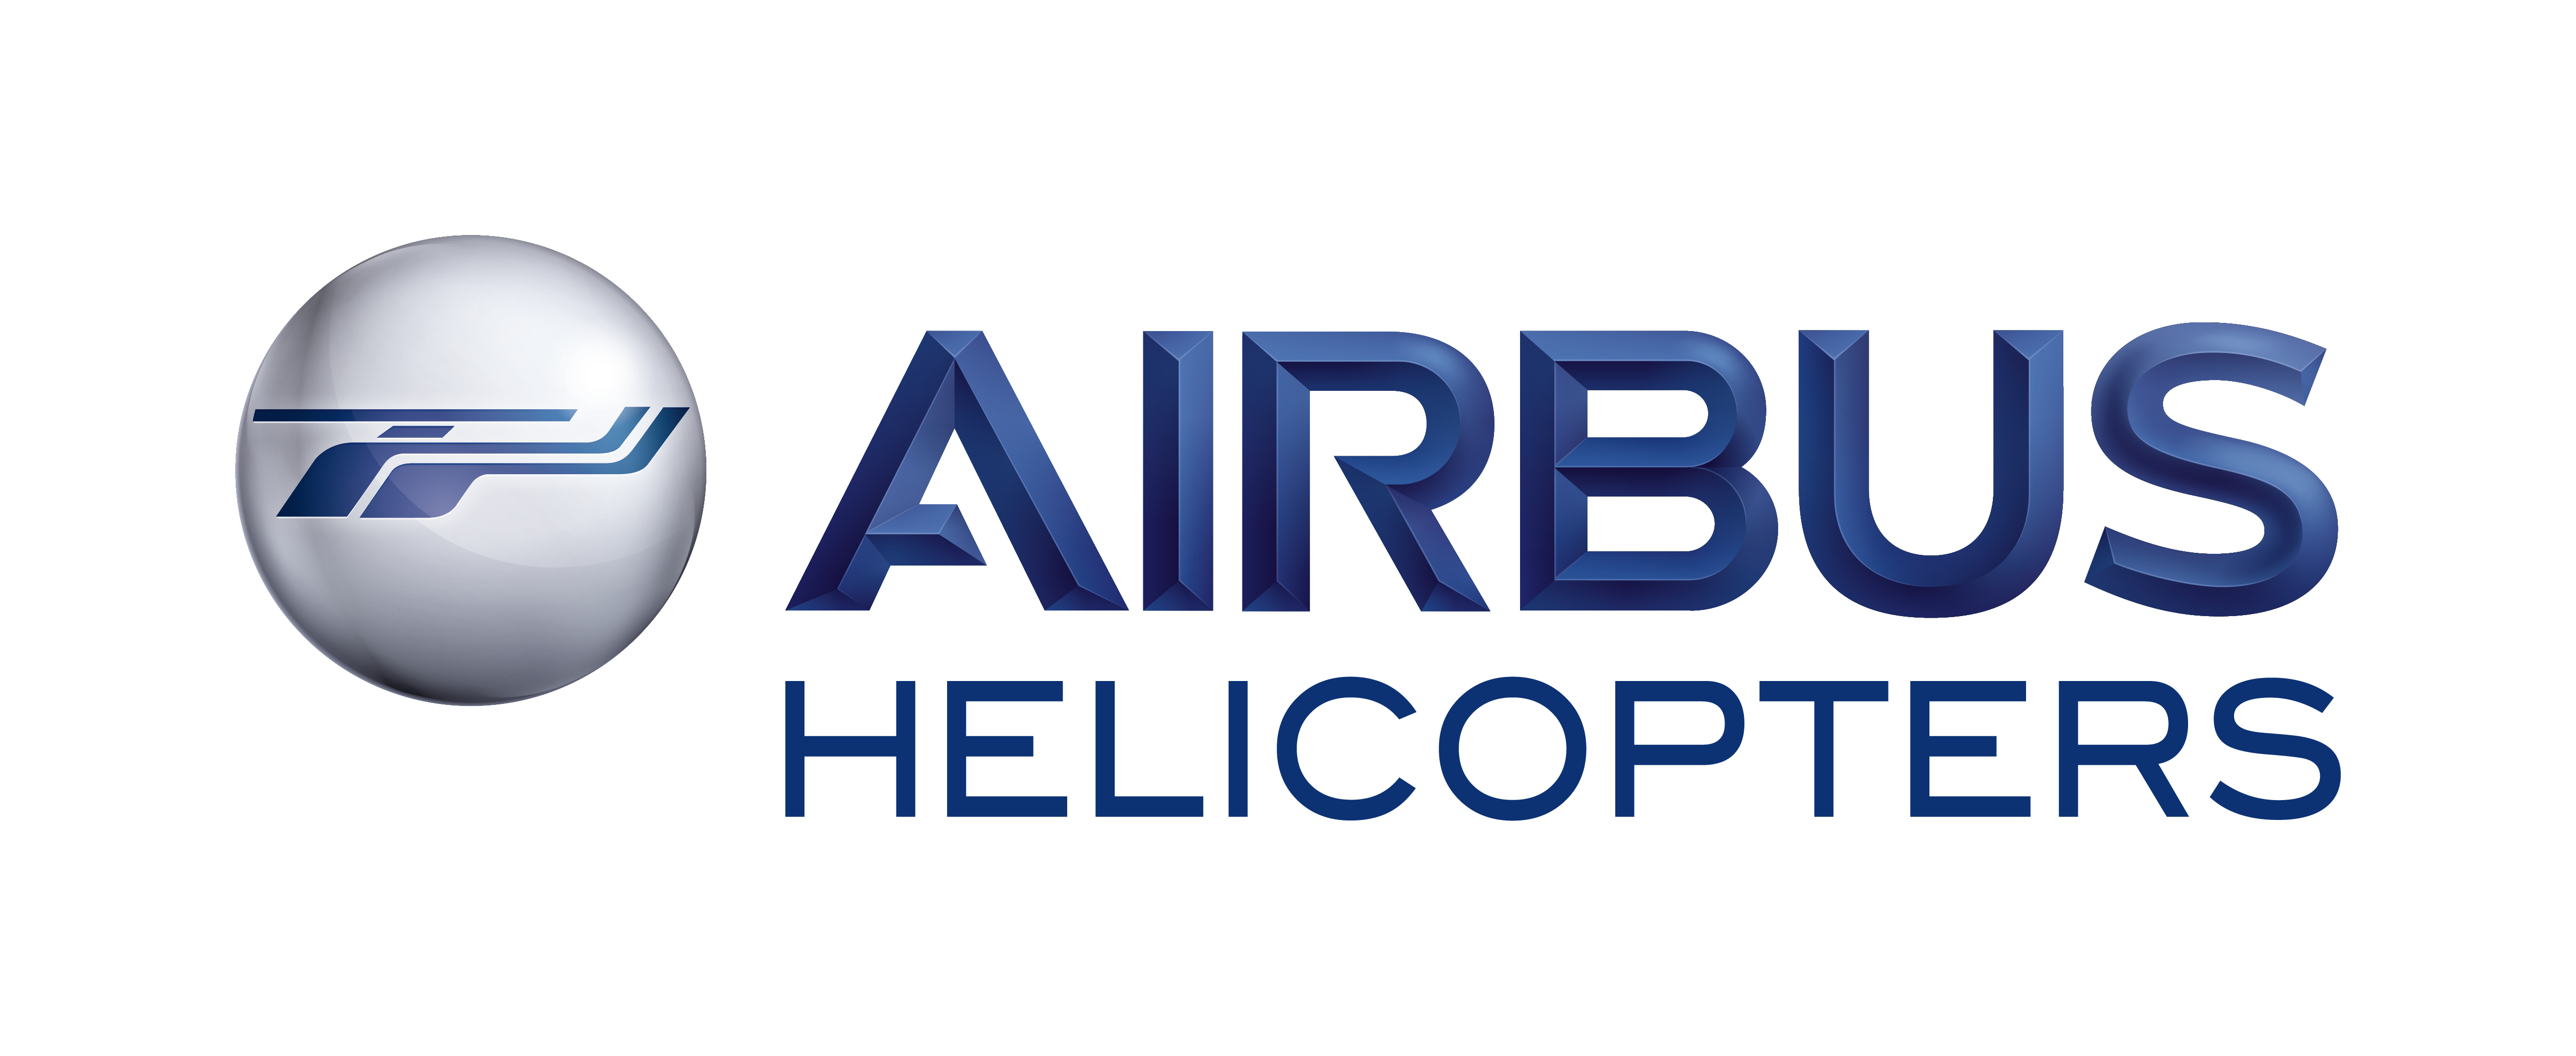 AIRBUS Helicopters 3D Blue RGB